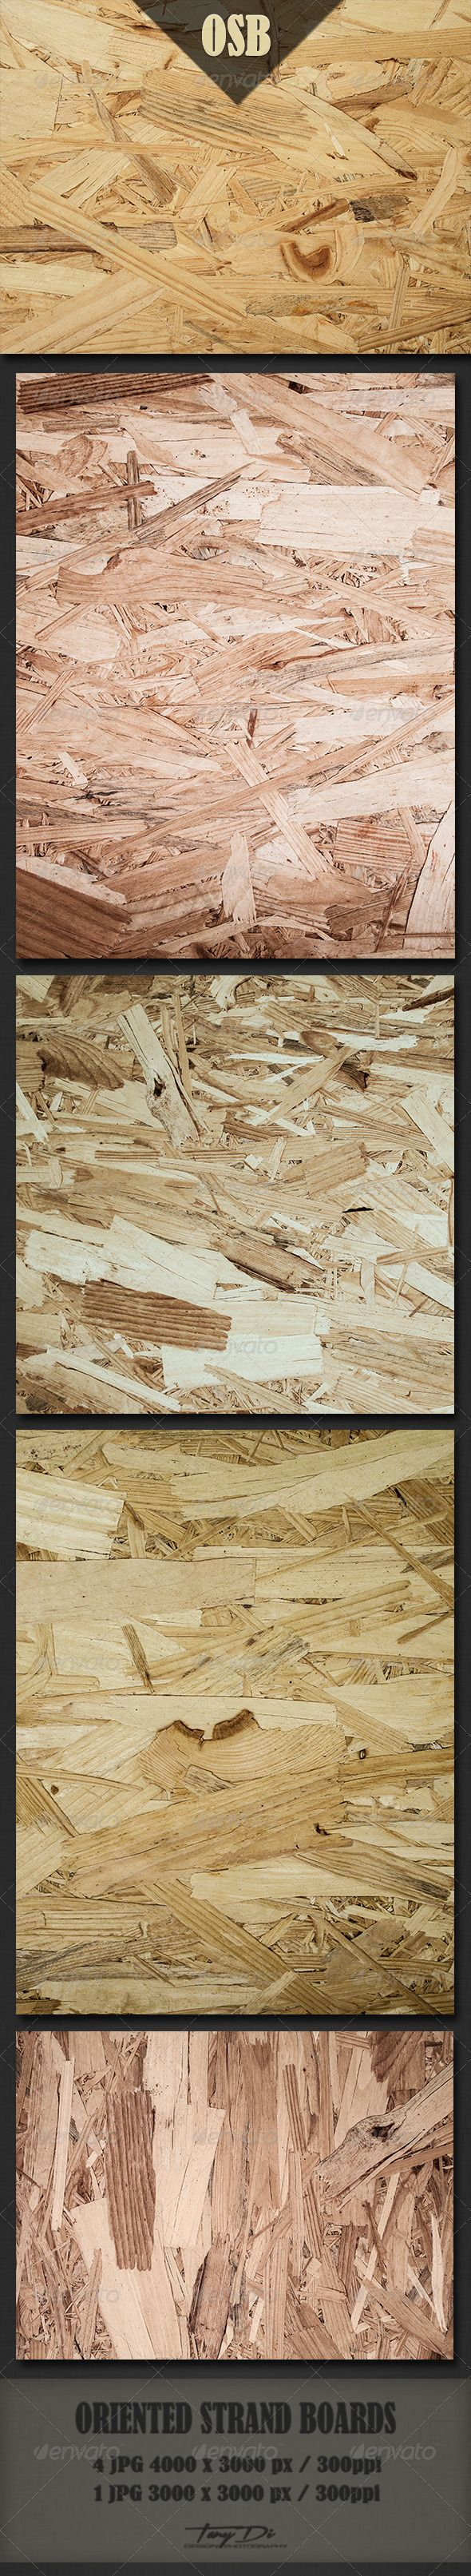 OSB Oriented Strand Boards abstract, background, beige, board, brown, build, building, carpentry, compressed, construction, engineered, exterior, fencing, fibers, foil, interior, makeover, material, osb, osb panel, panel, plywood, reform, roofs, sawdust, texture, wood, OSB Oriented Strand Boards